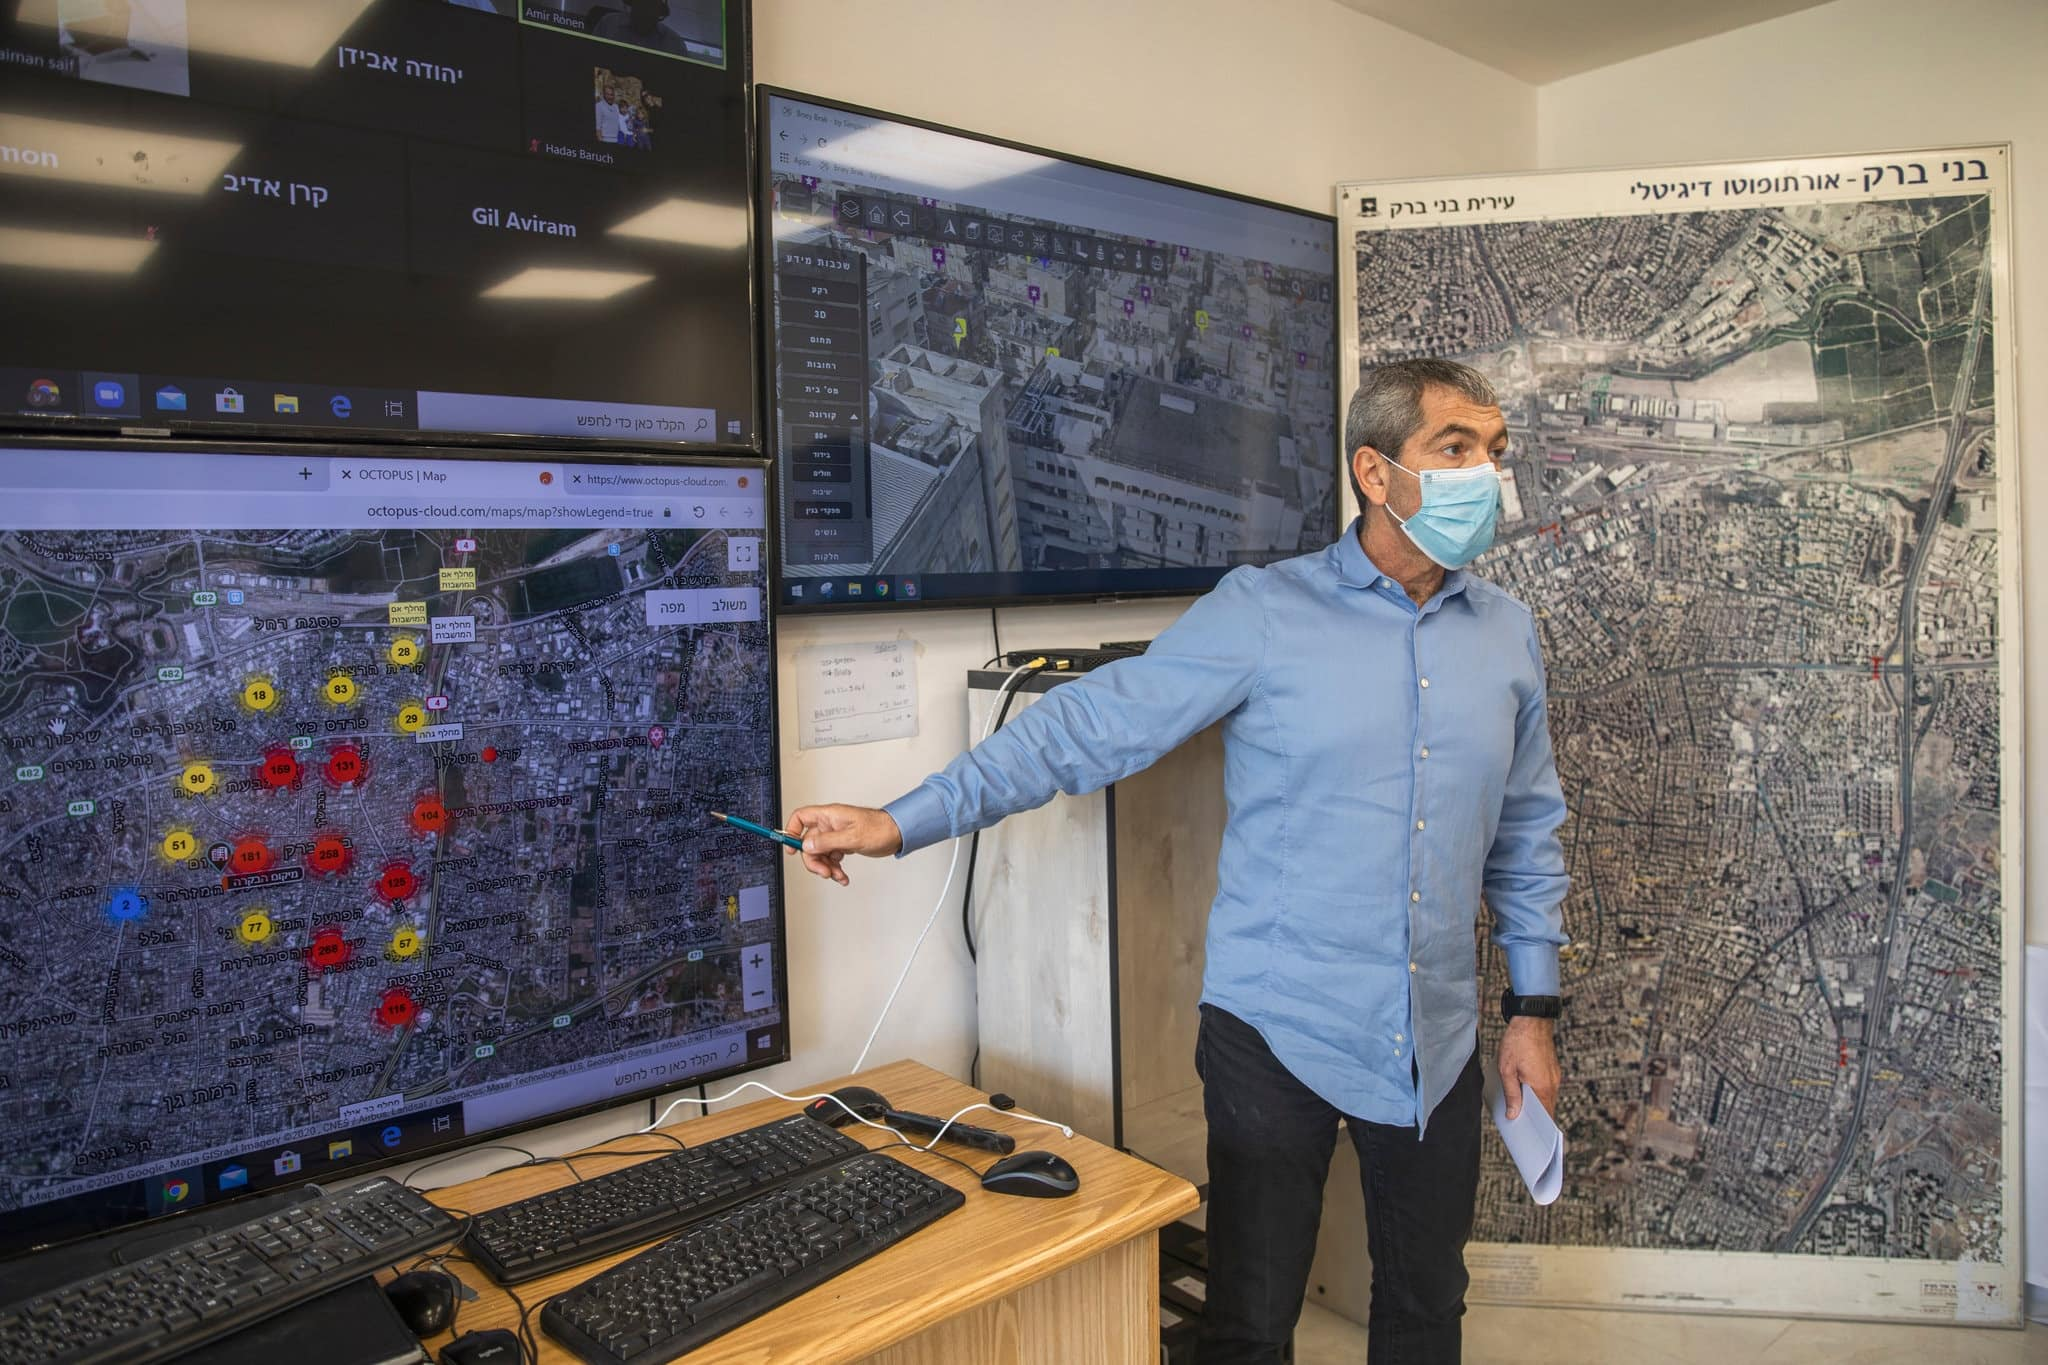 Maj. Gen. Ronny Numa at the city's virus war room, where a data-visualization system maps the sick, the elderly, yeshivas, synagogues and other information on big-screen TVs.